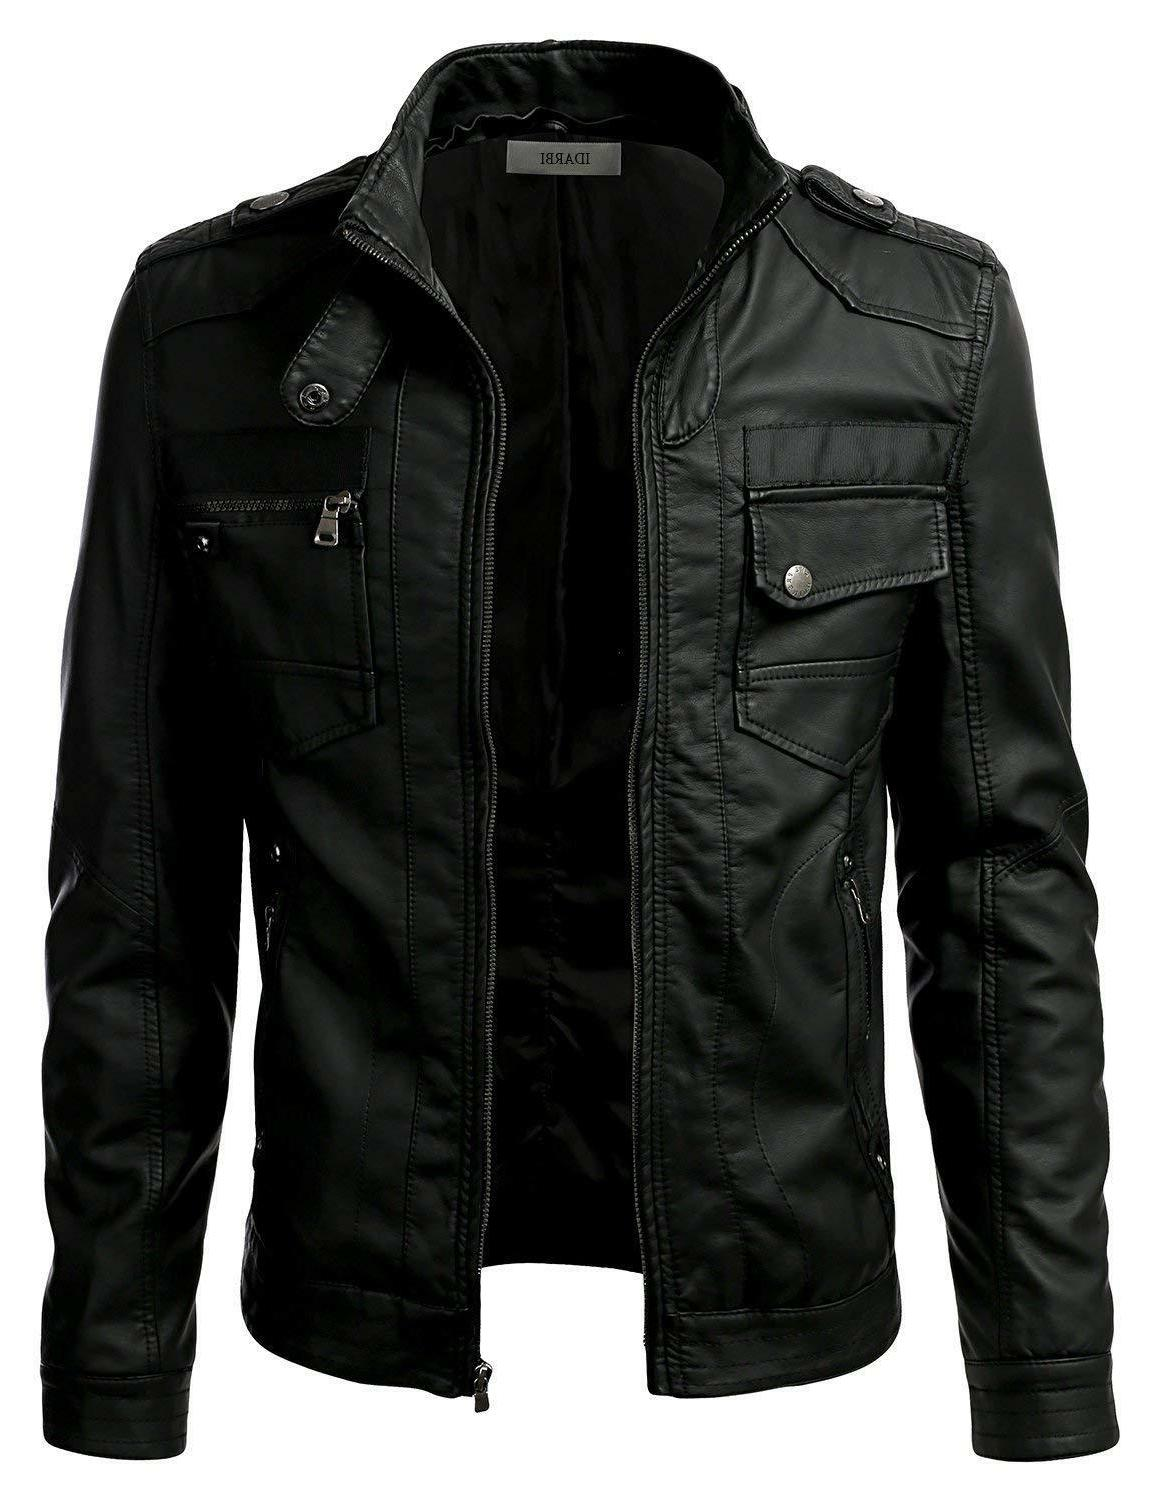 IDARBI Mens Premium Collar Zip Up Leather